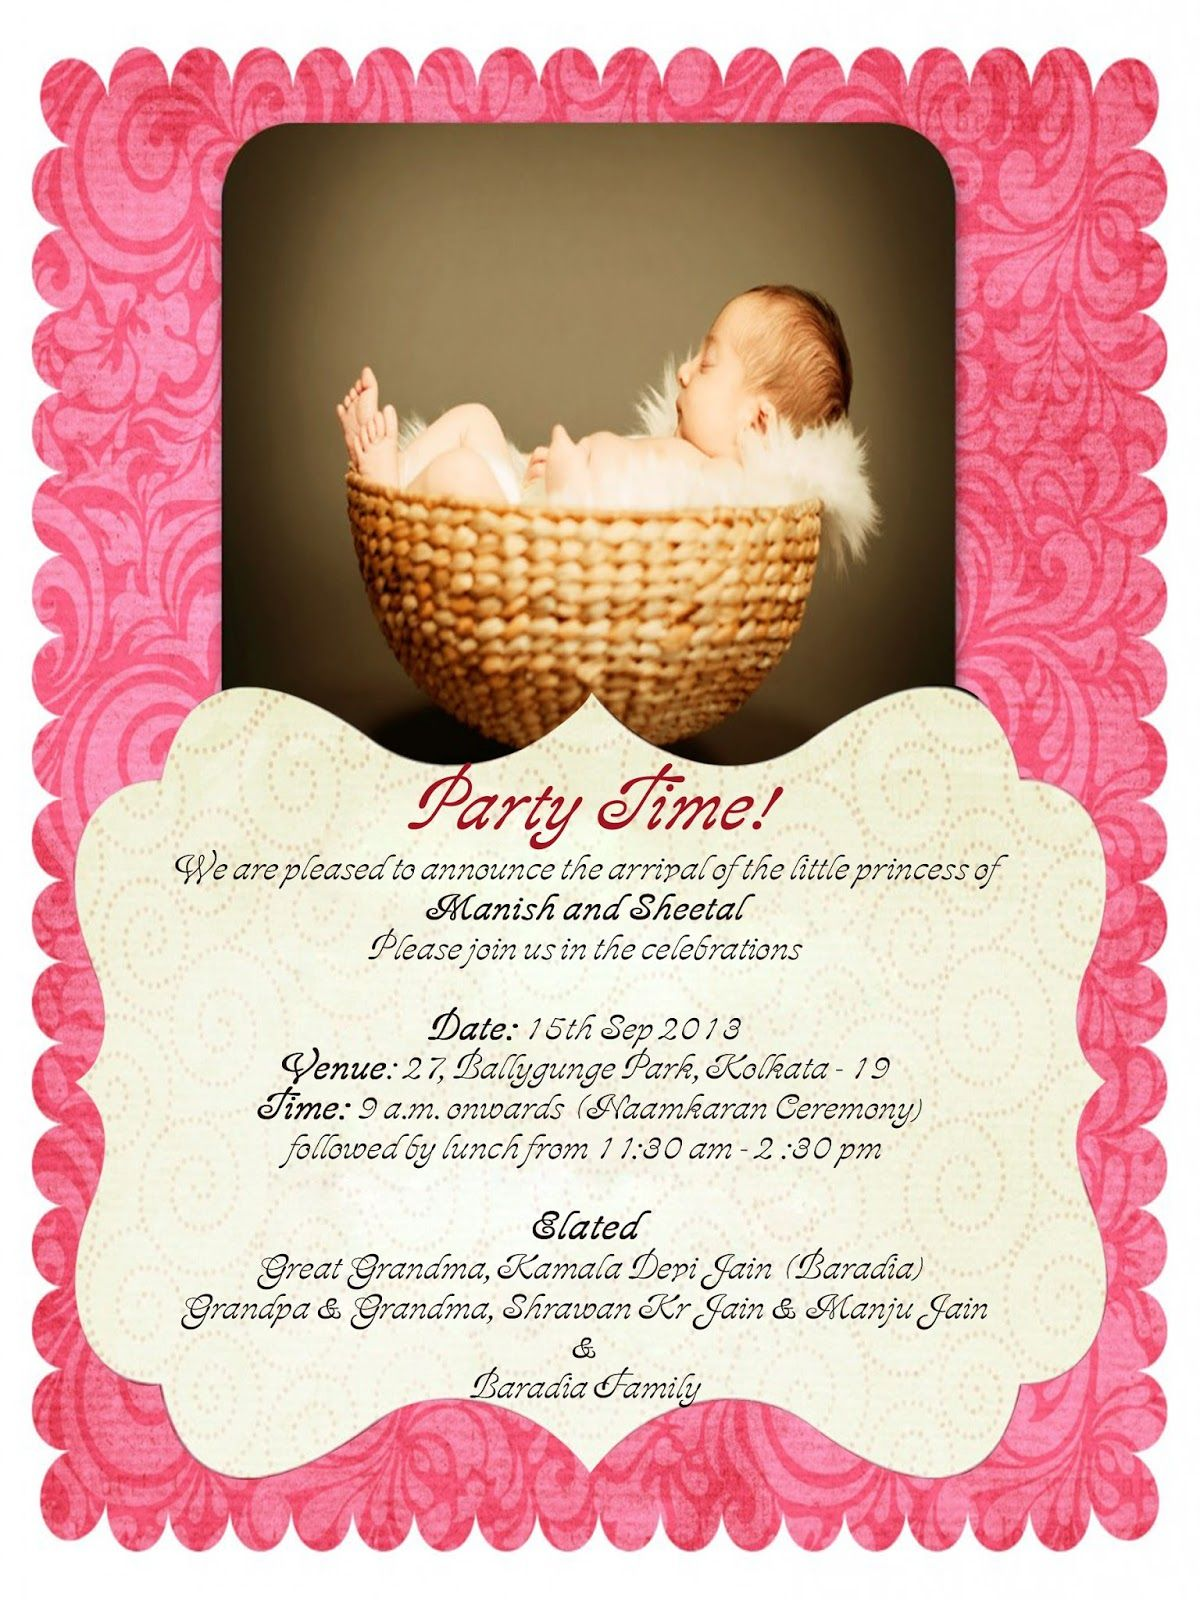 Cradle Ceremony Invite Free Baby Girl Naming Ceremony Invitation